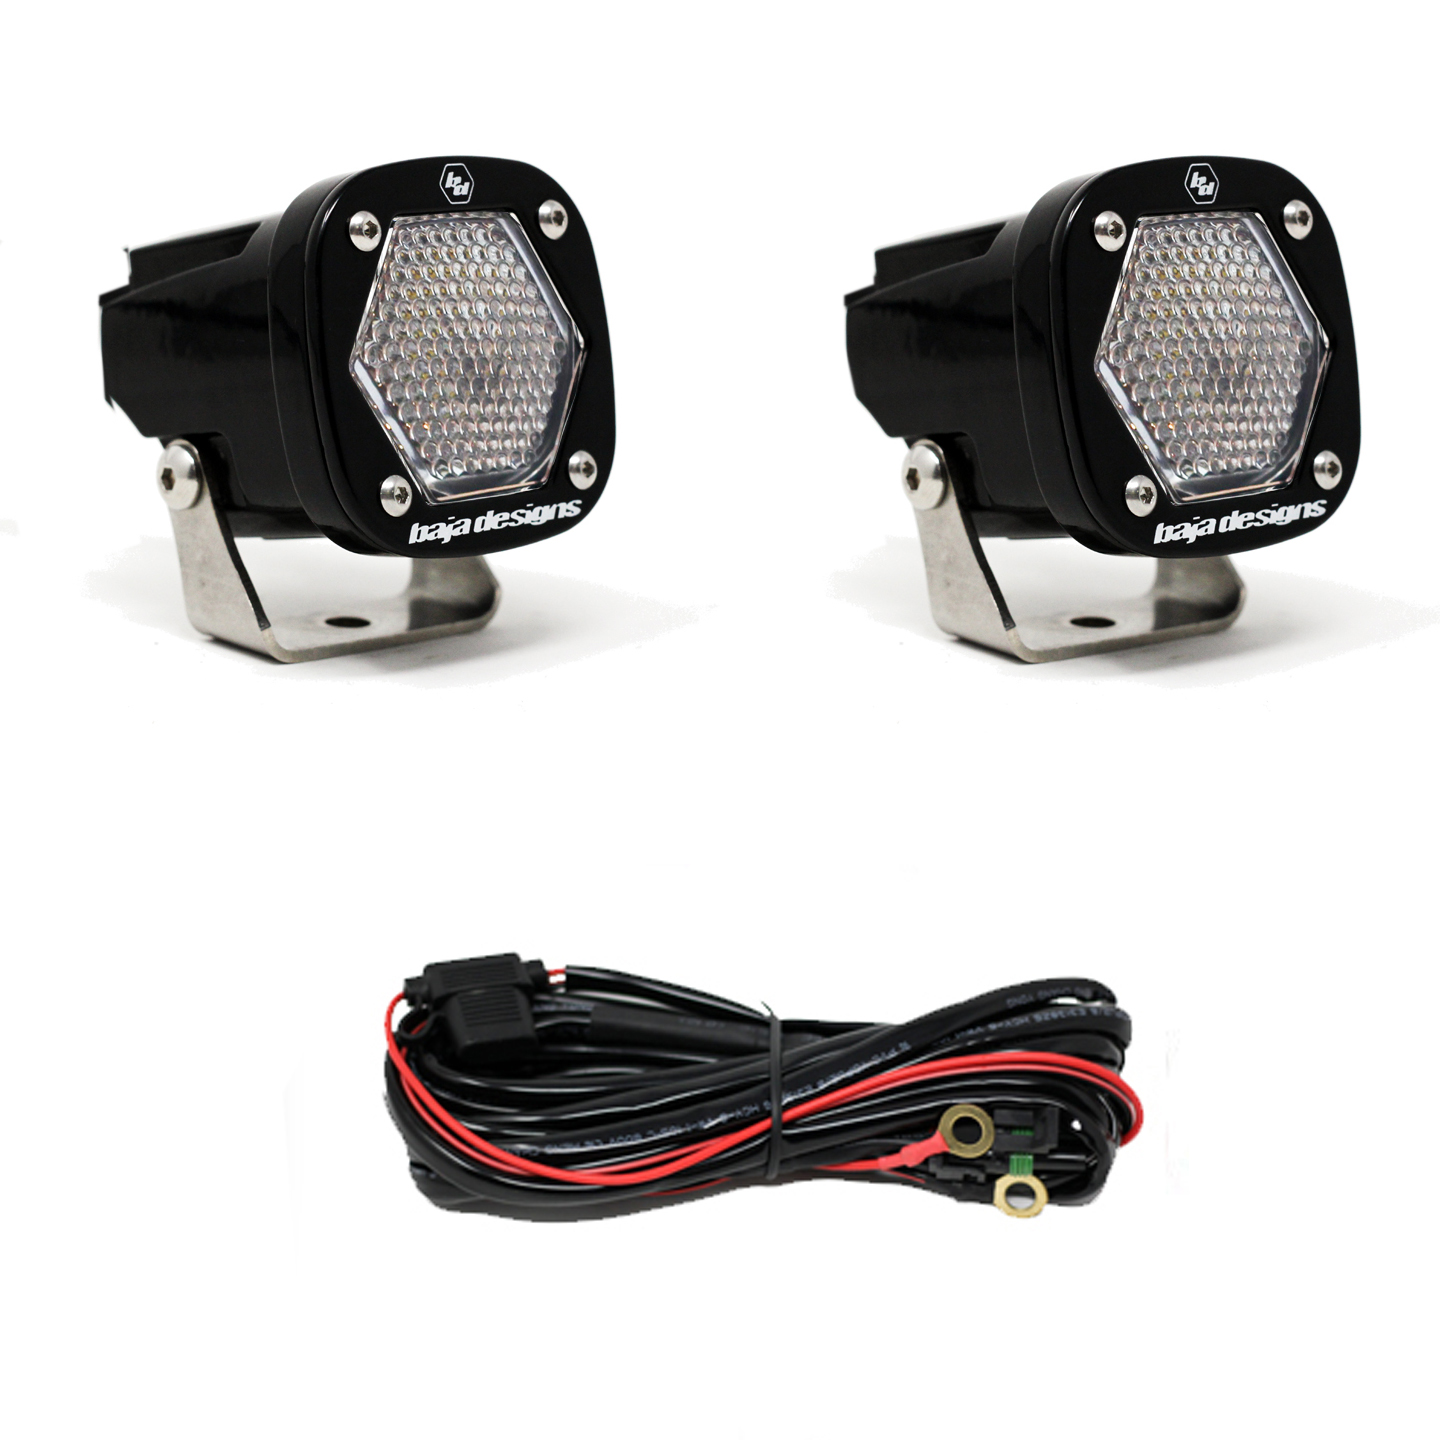 S1 Work/Scene LED Light with Mounting Bracket Pair Baja Designs